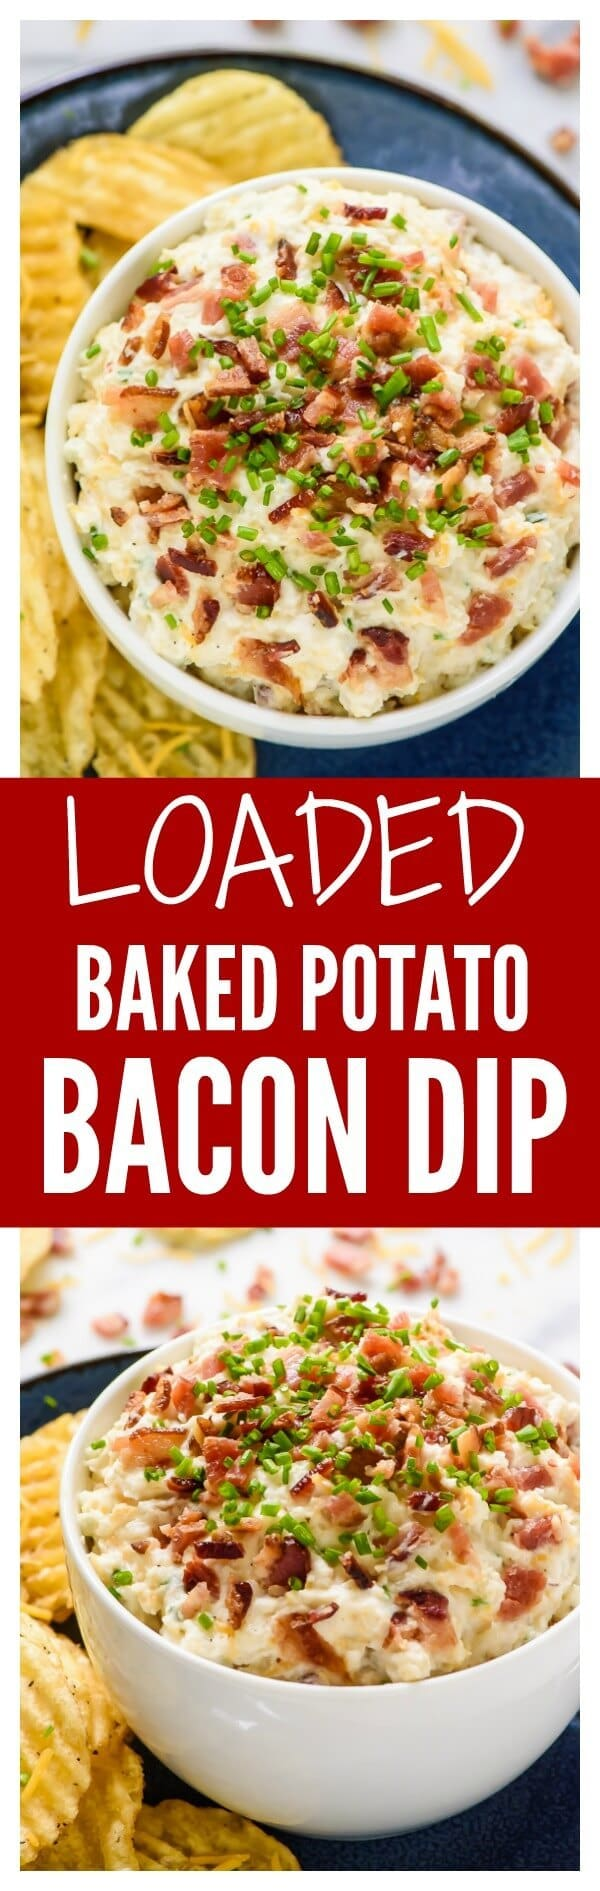 No one will be able to stop eating this Loaded Baked Potato Dip with ...